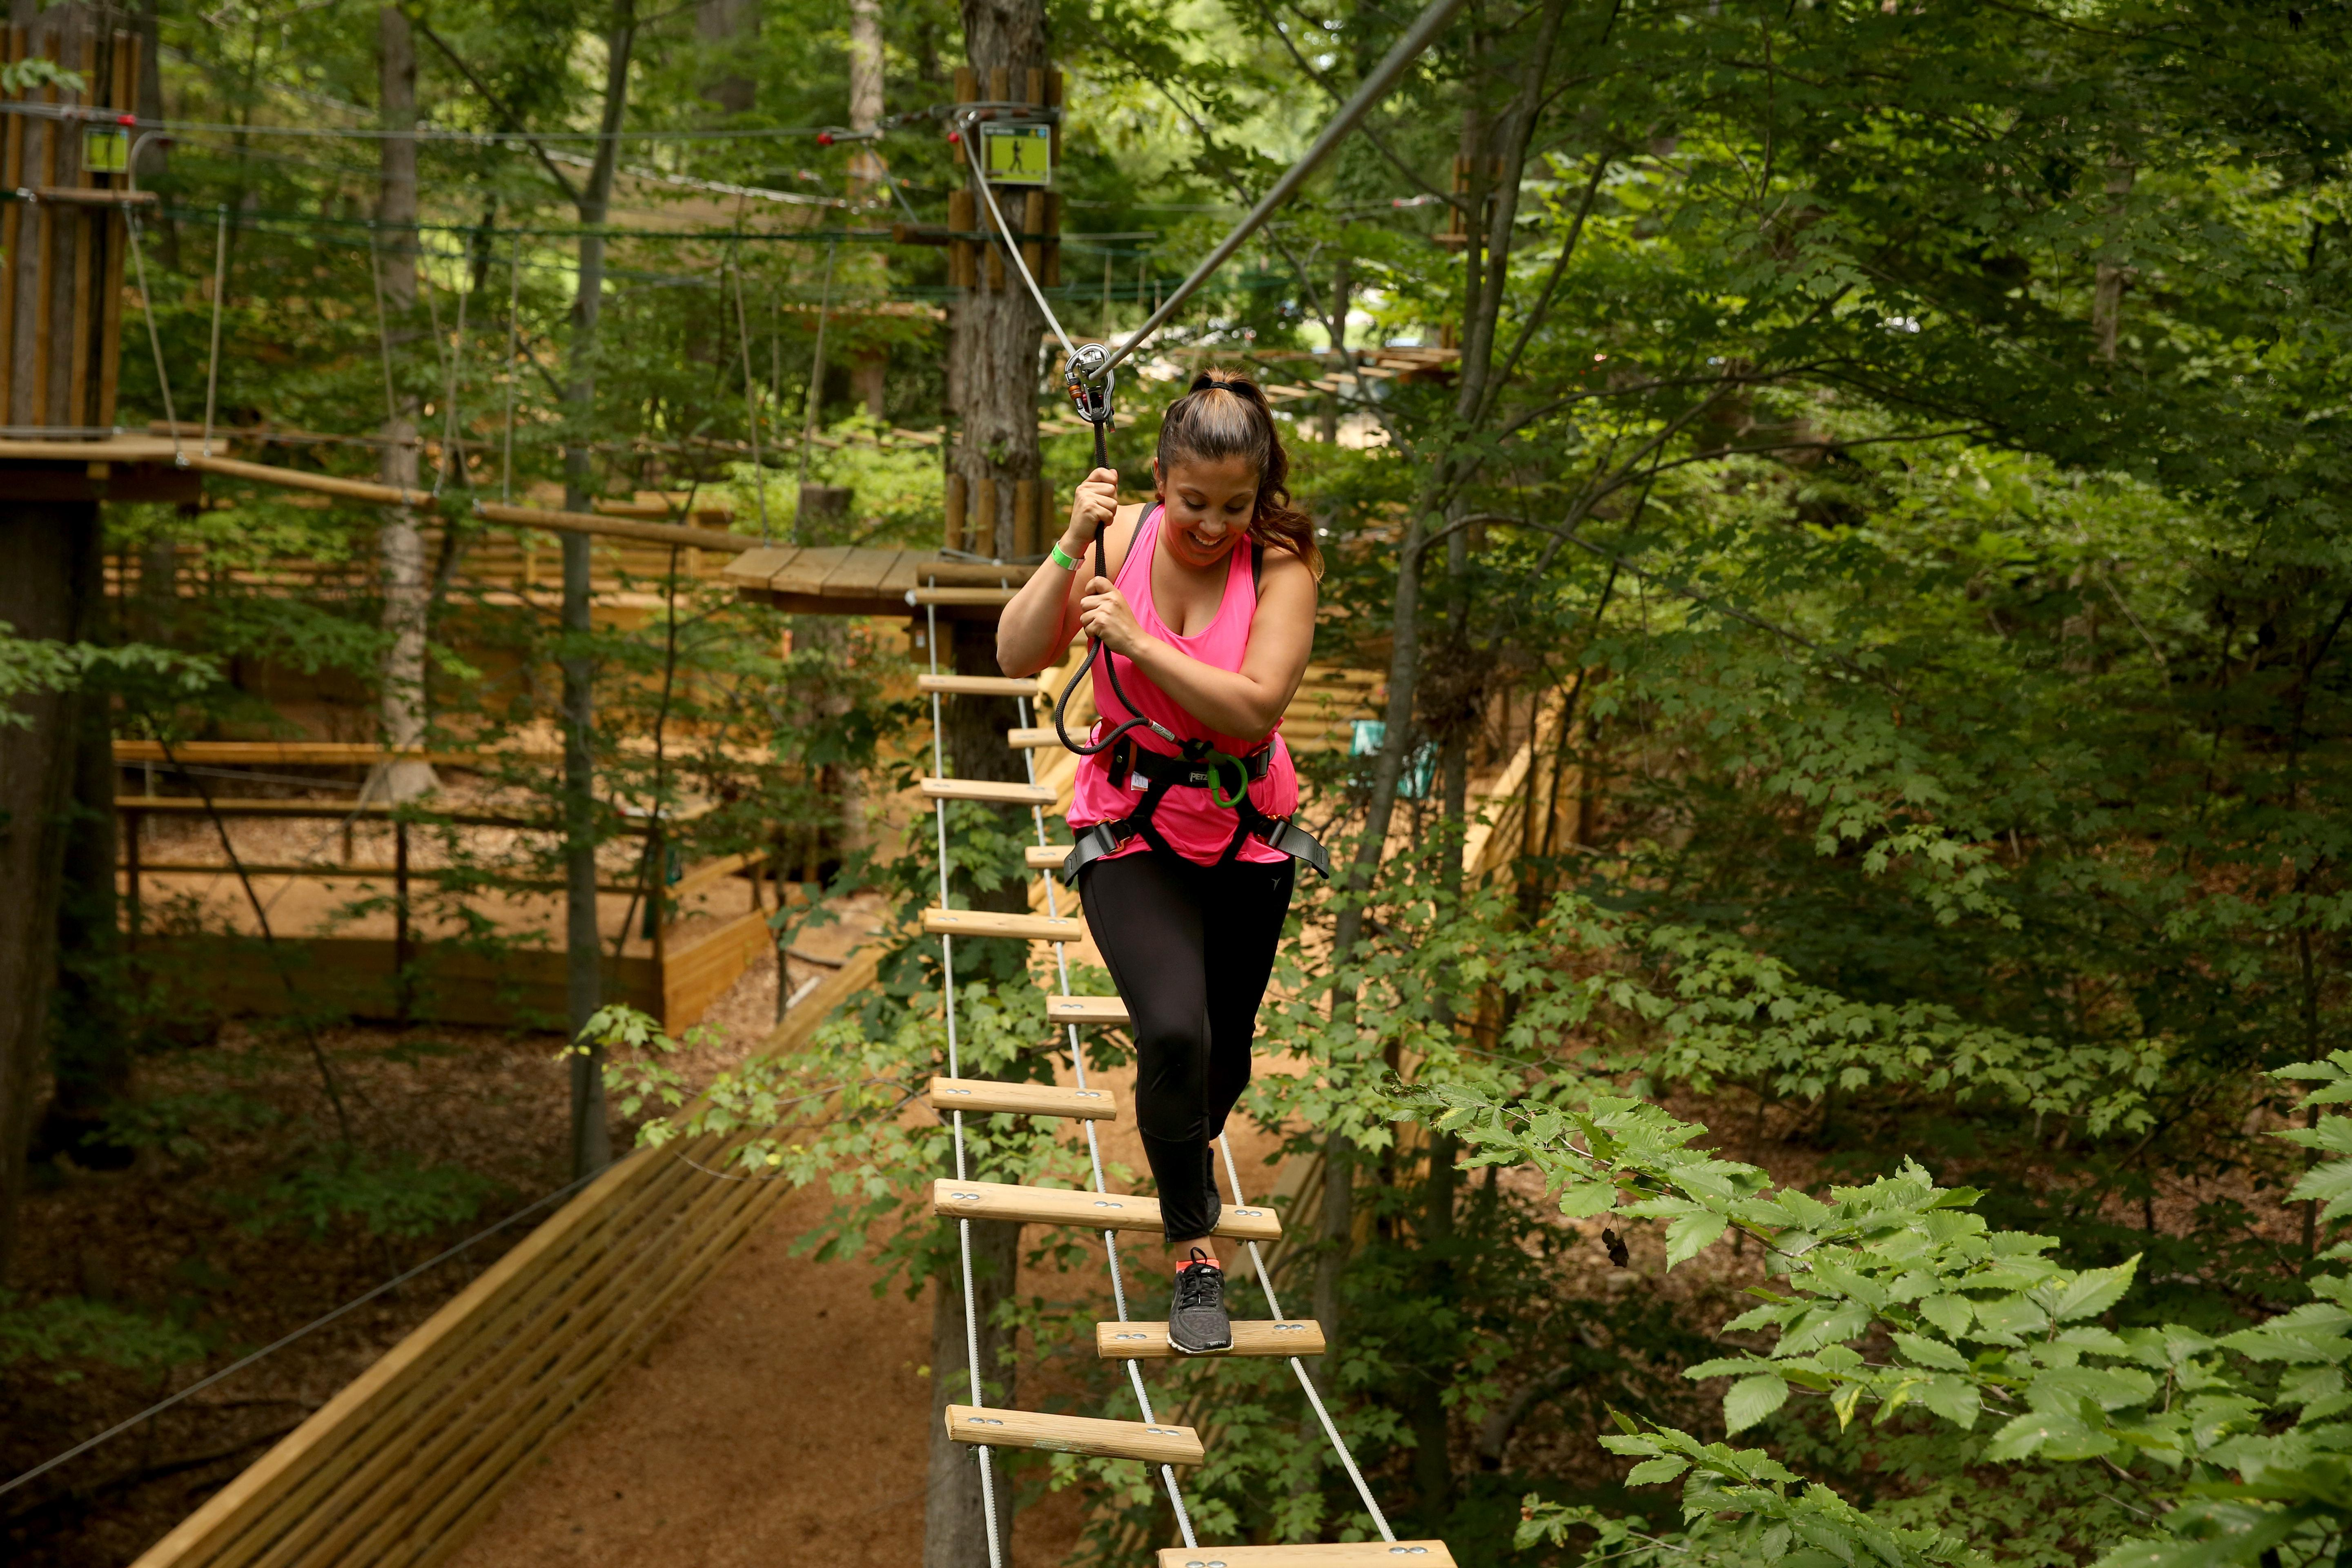 Are you looking for a fun/adventurous summer activity? Go Ape, a treetop course that navigates you through suspended obstacles and zip lines has opened their newest location in Springfield, Va at South Run Park. The course is a self-guided adventure that will take you about two to three hours to complete. Go Ape is $58 for anyone over the age of 18; ages 16-17 is $38; and $38 for ages 10-15. For more information on Go Ape visit their website: https://goape.com/adventures (Amanda Andrade-Rhoades/DC Refined)